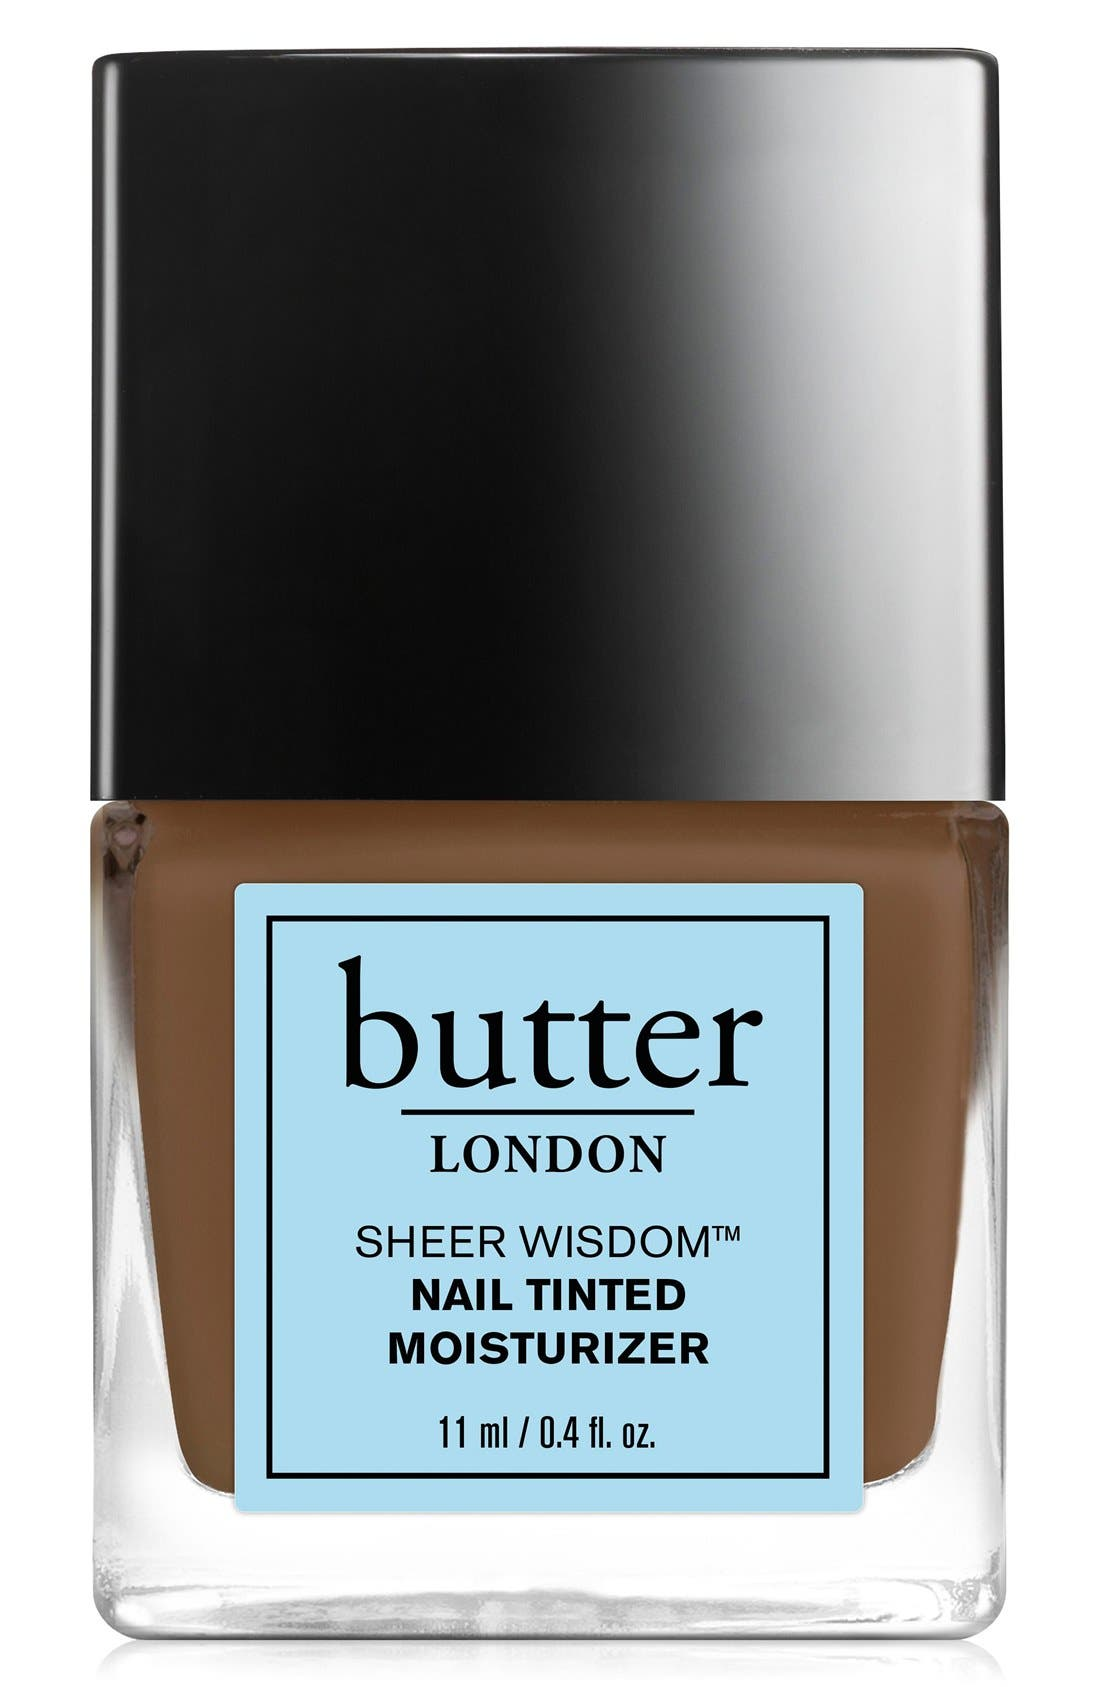 butter LONDON 'Sheer Wisdom™' Nail Tinted Moisturizer